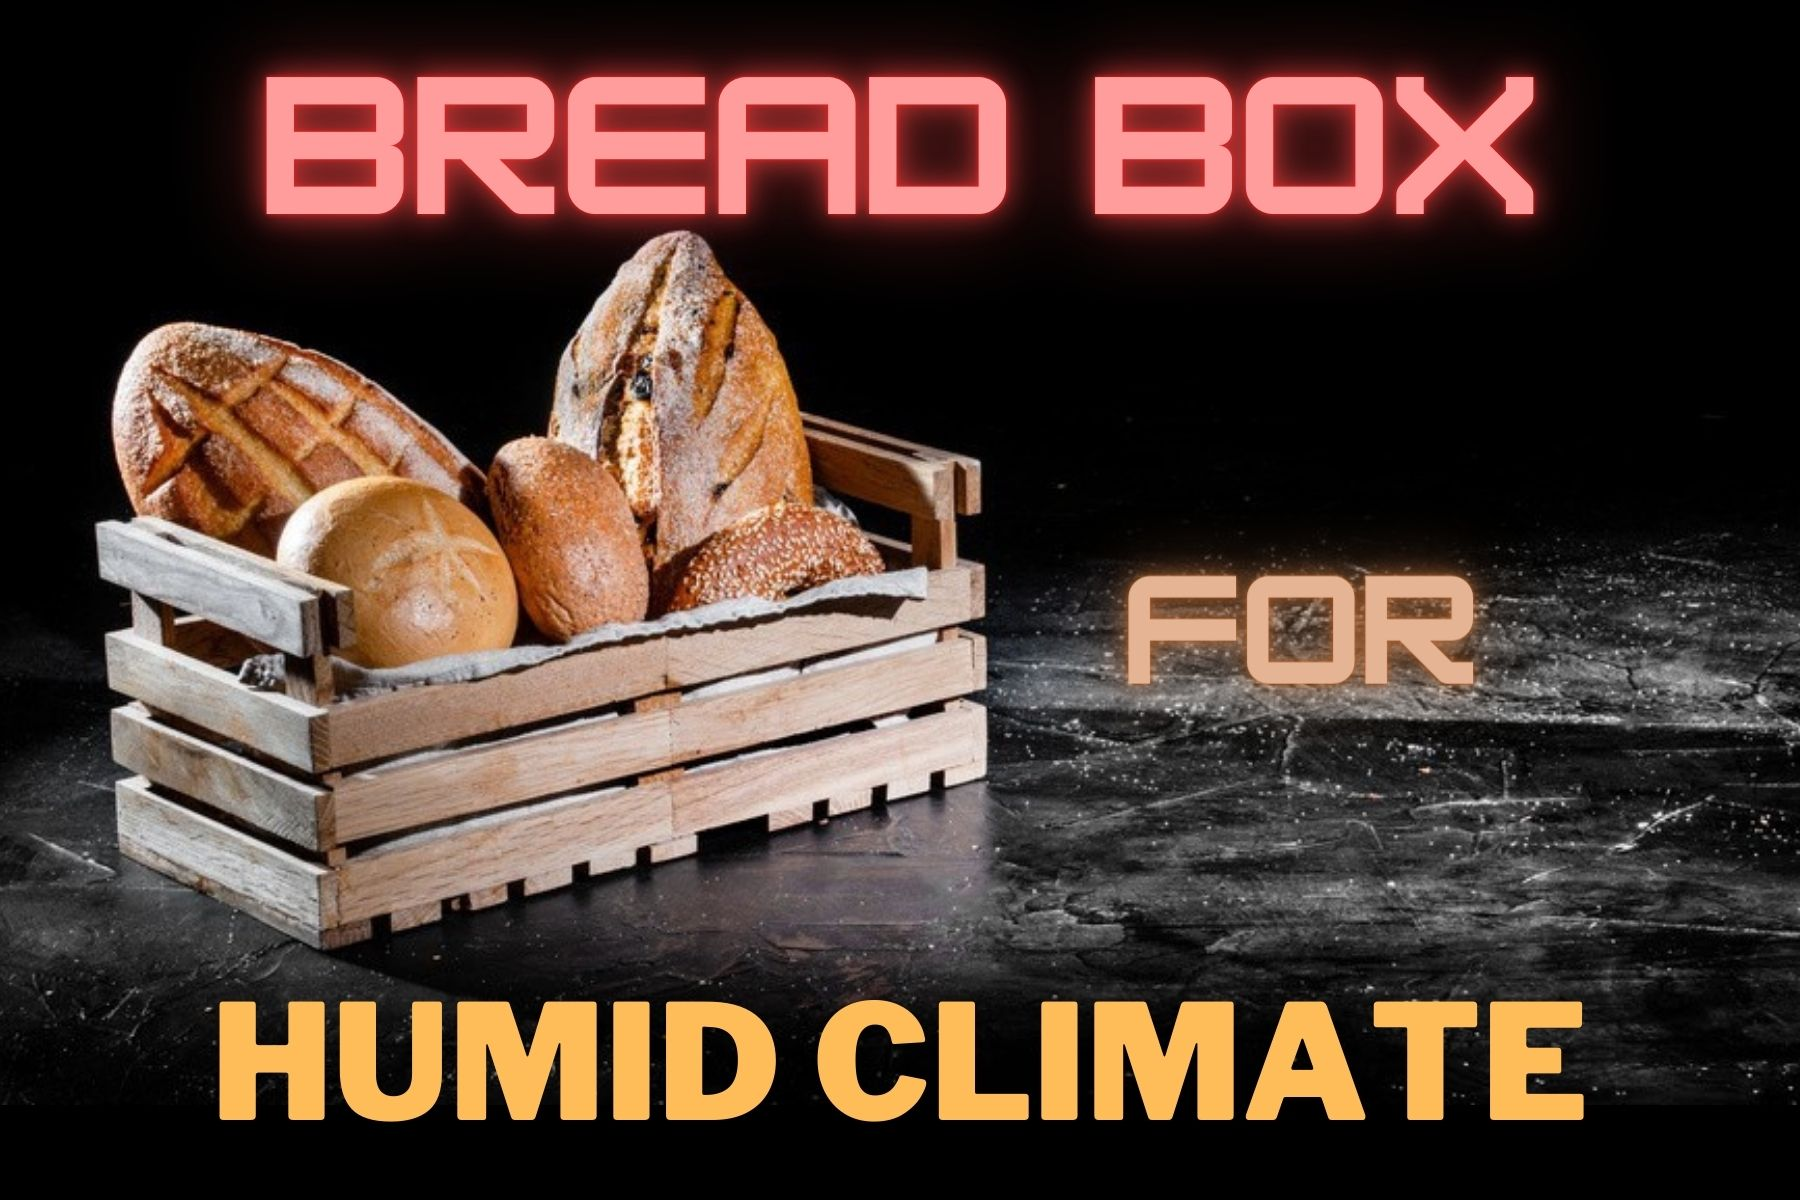 Best Bread Box For Humid Climate